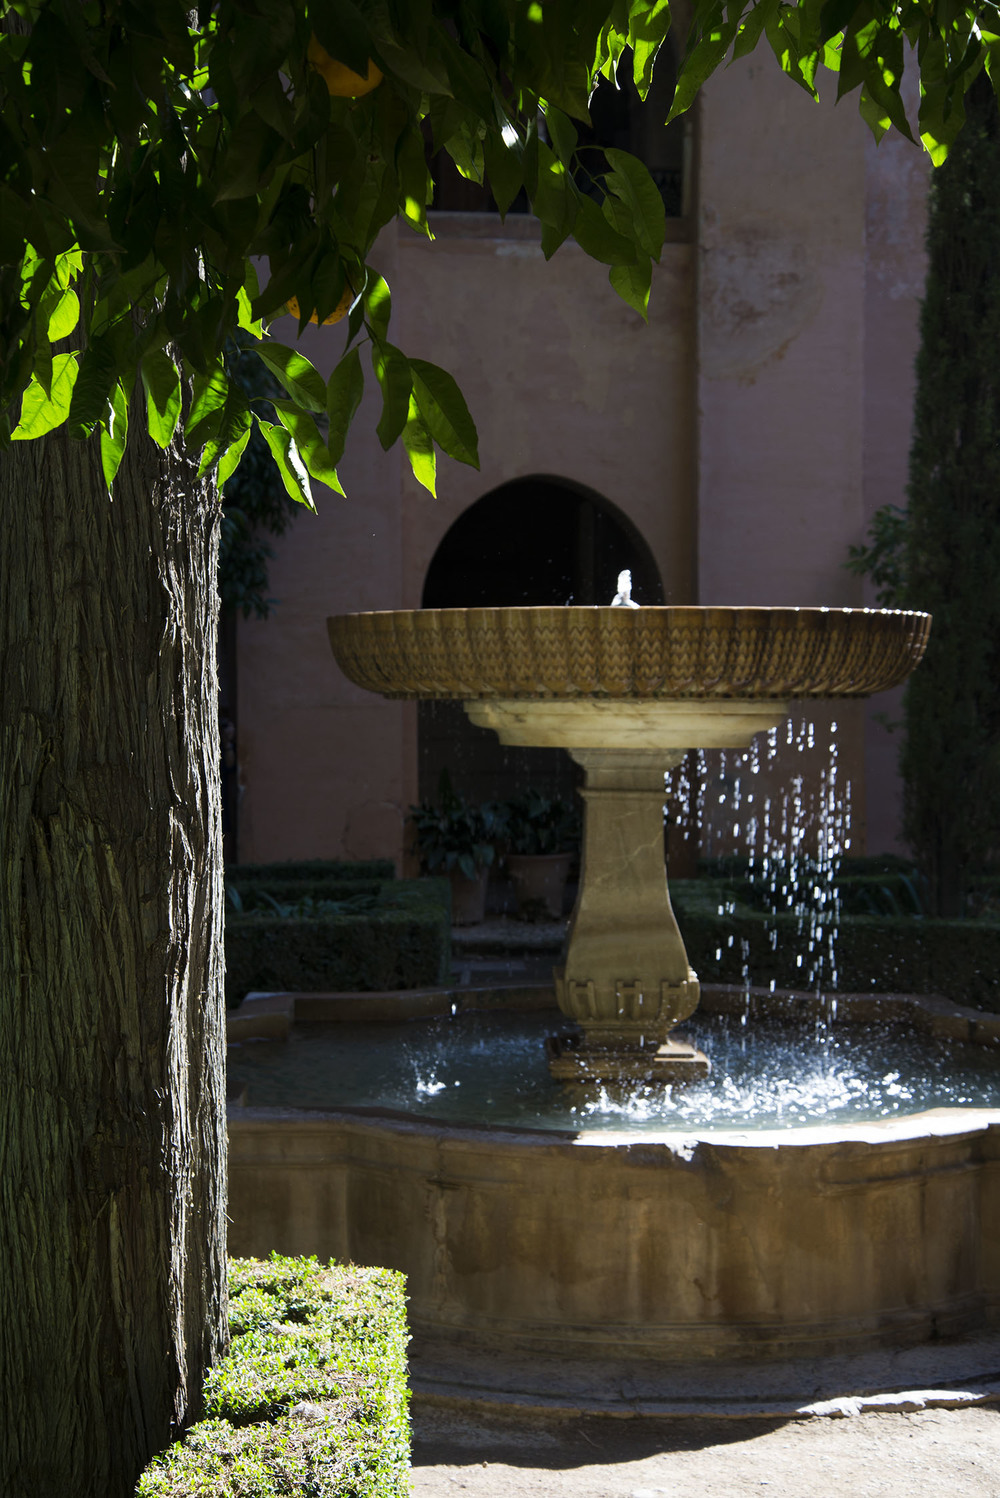 Fountain of the Daraxa Garden, Carlos V,  1526-1538,  Granada